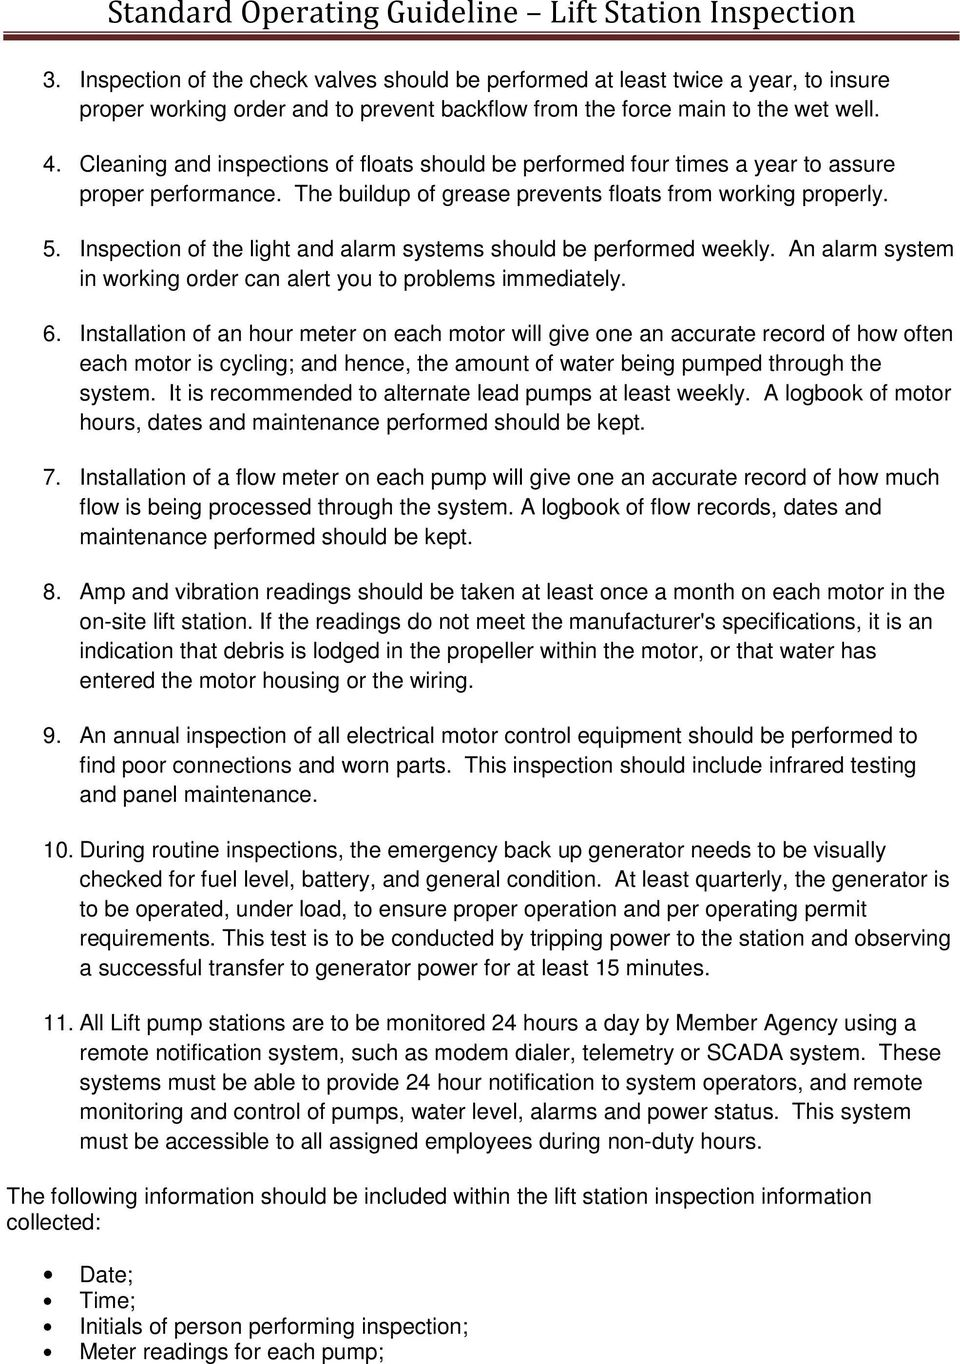 Standard Operating Guideline Lift Station Inspection Pdf Pump Wiring Of The Light And Alarm Systems Should Be Performed Weekly An System In